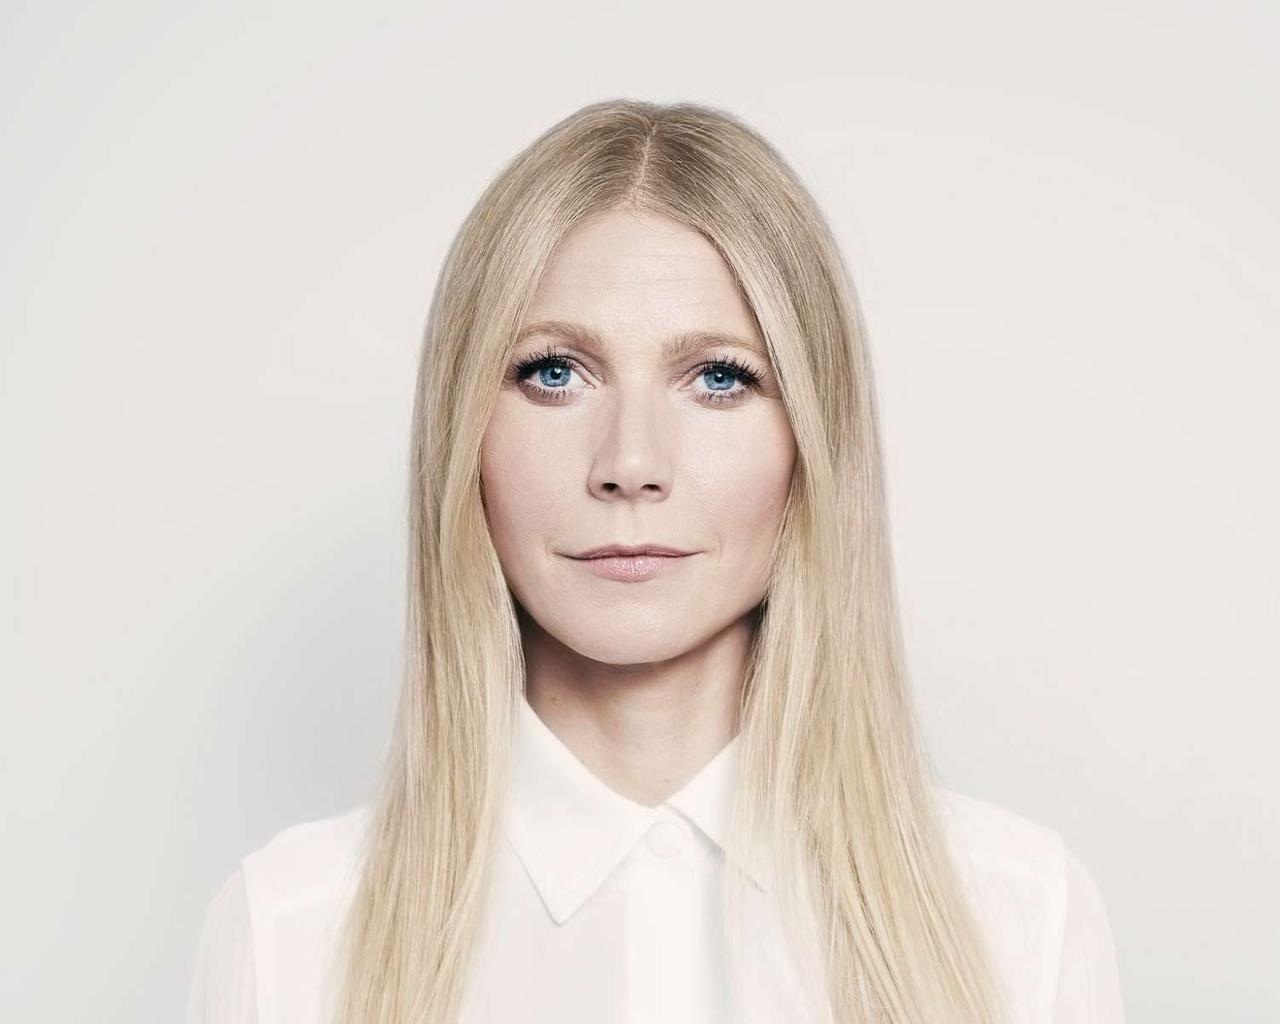 Gwyneth Paltrow. Dermatologists say the star's sunscreen routine is dangerous